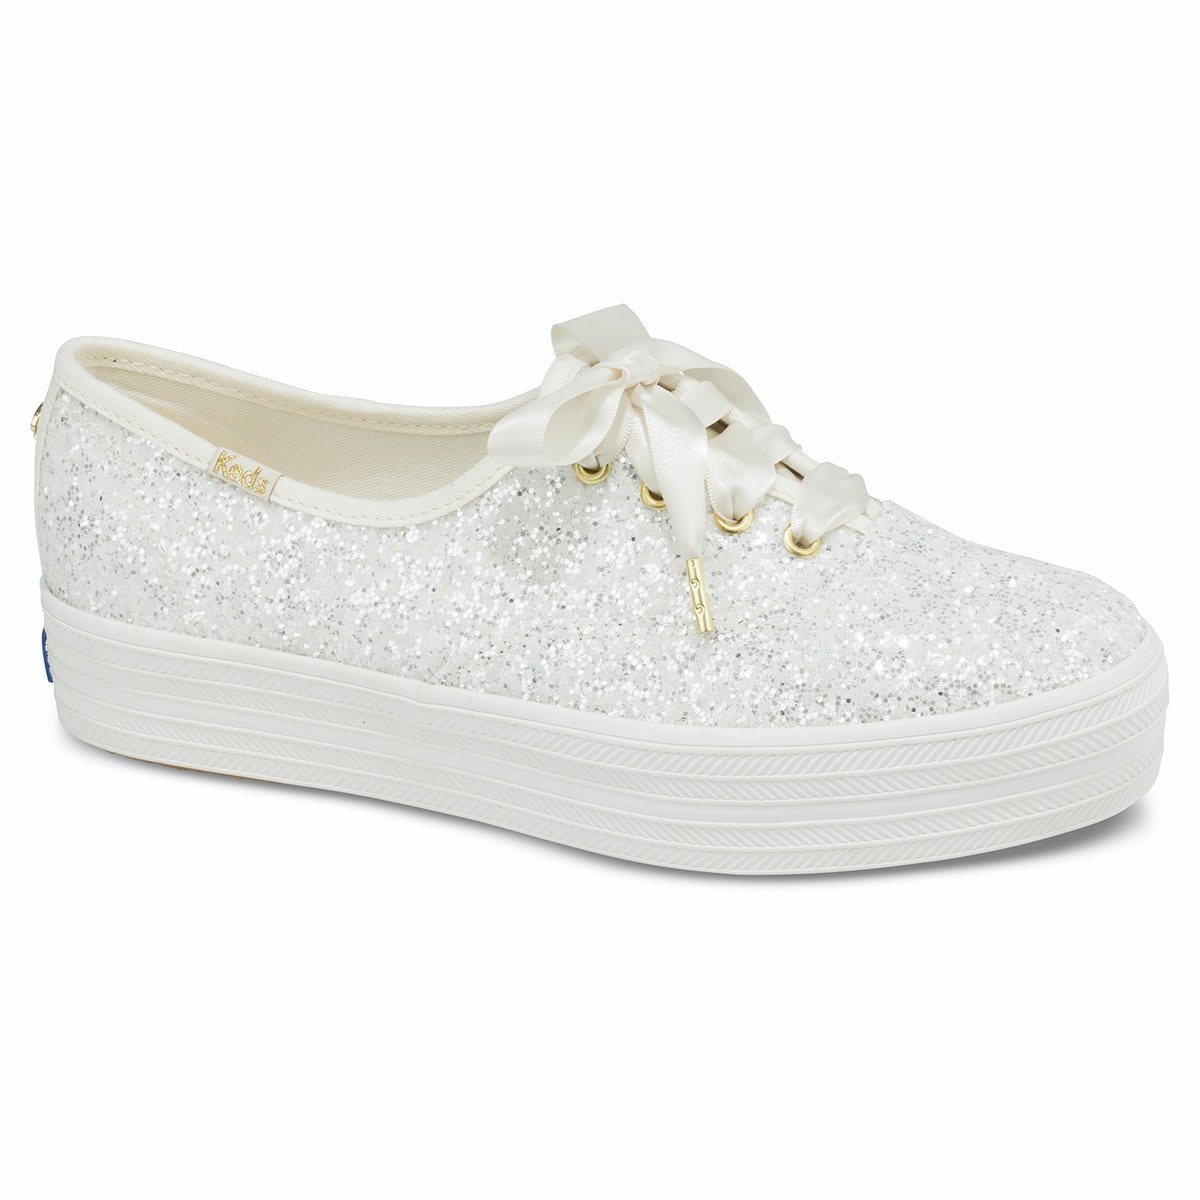 The Keds x Kate Spade New York Wedding Collection Is A Glittery Dream